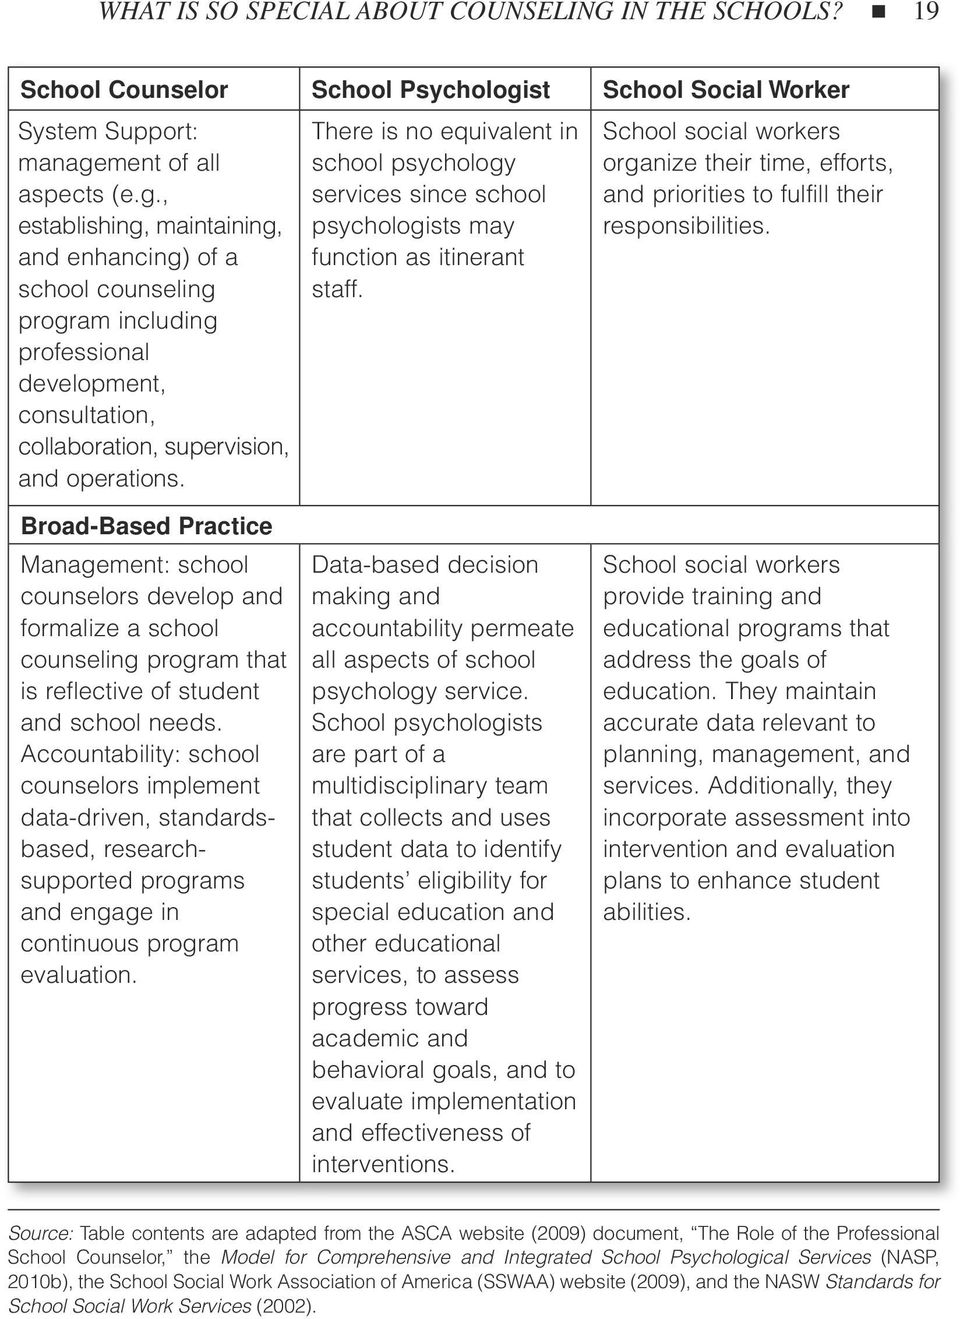 ment of all aspects (e.g., establishing, maintaining, and enhancing) of a school counseling program including professional development, consultation, collaboration, supervision, and operations.